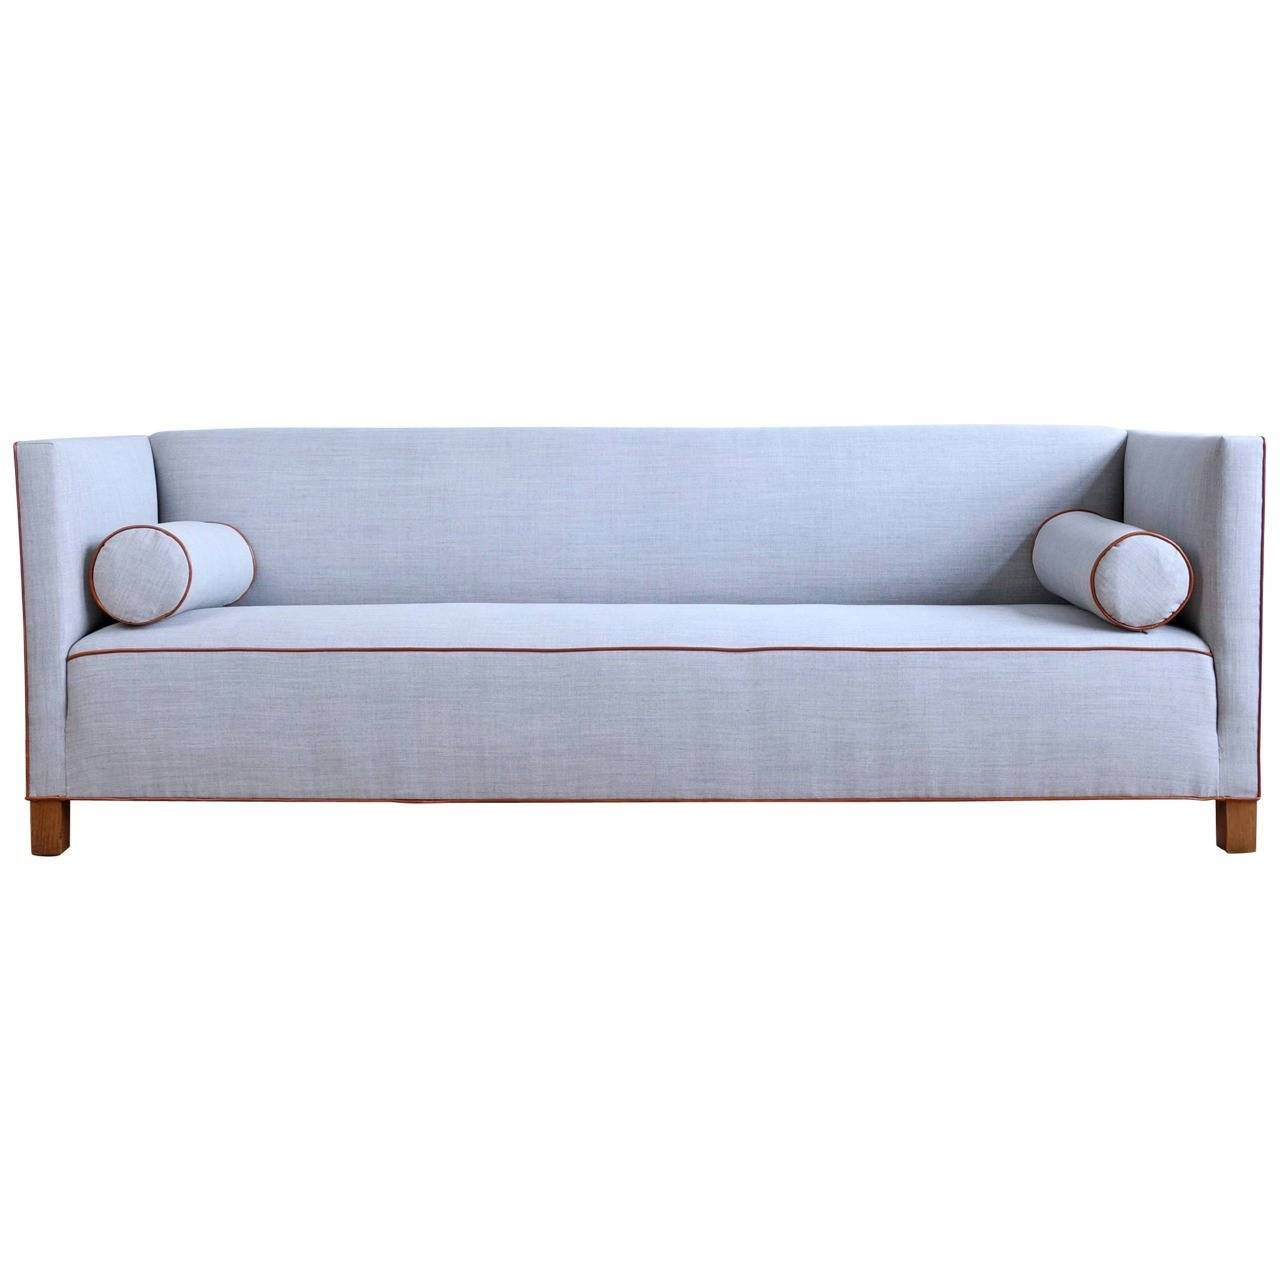 Long Danish 1930S Sofa Upholstered In Wool And Leather At 1Stdibs for 1930S Sofas (Image 12 of 30)